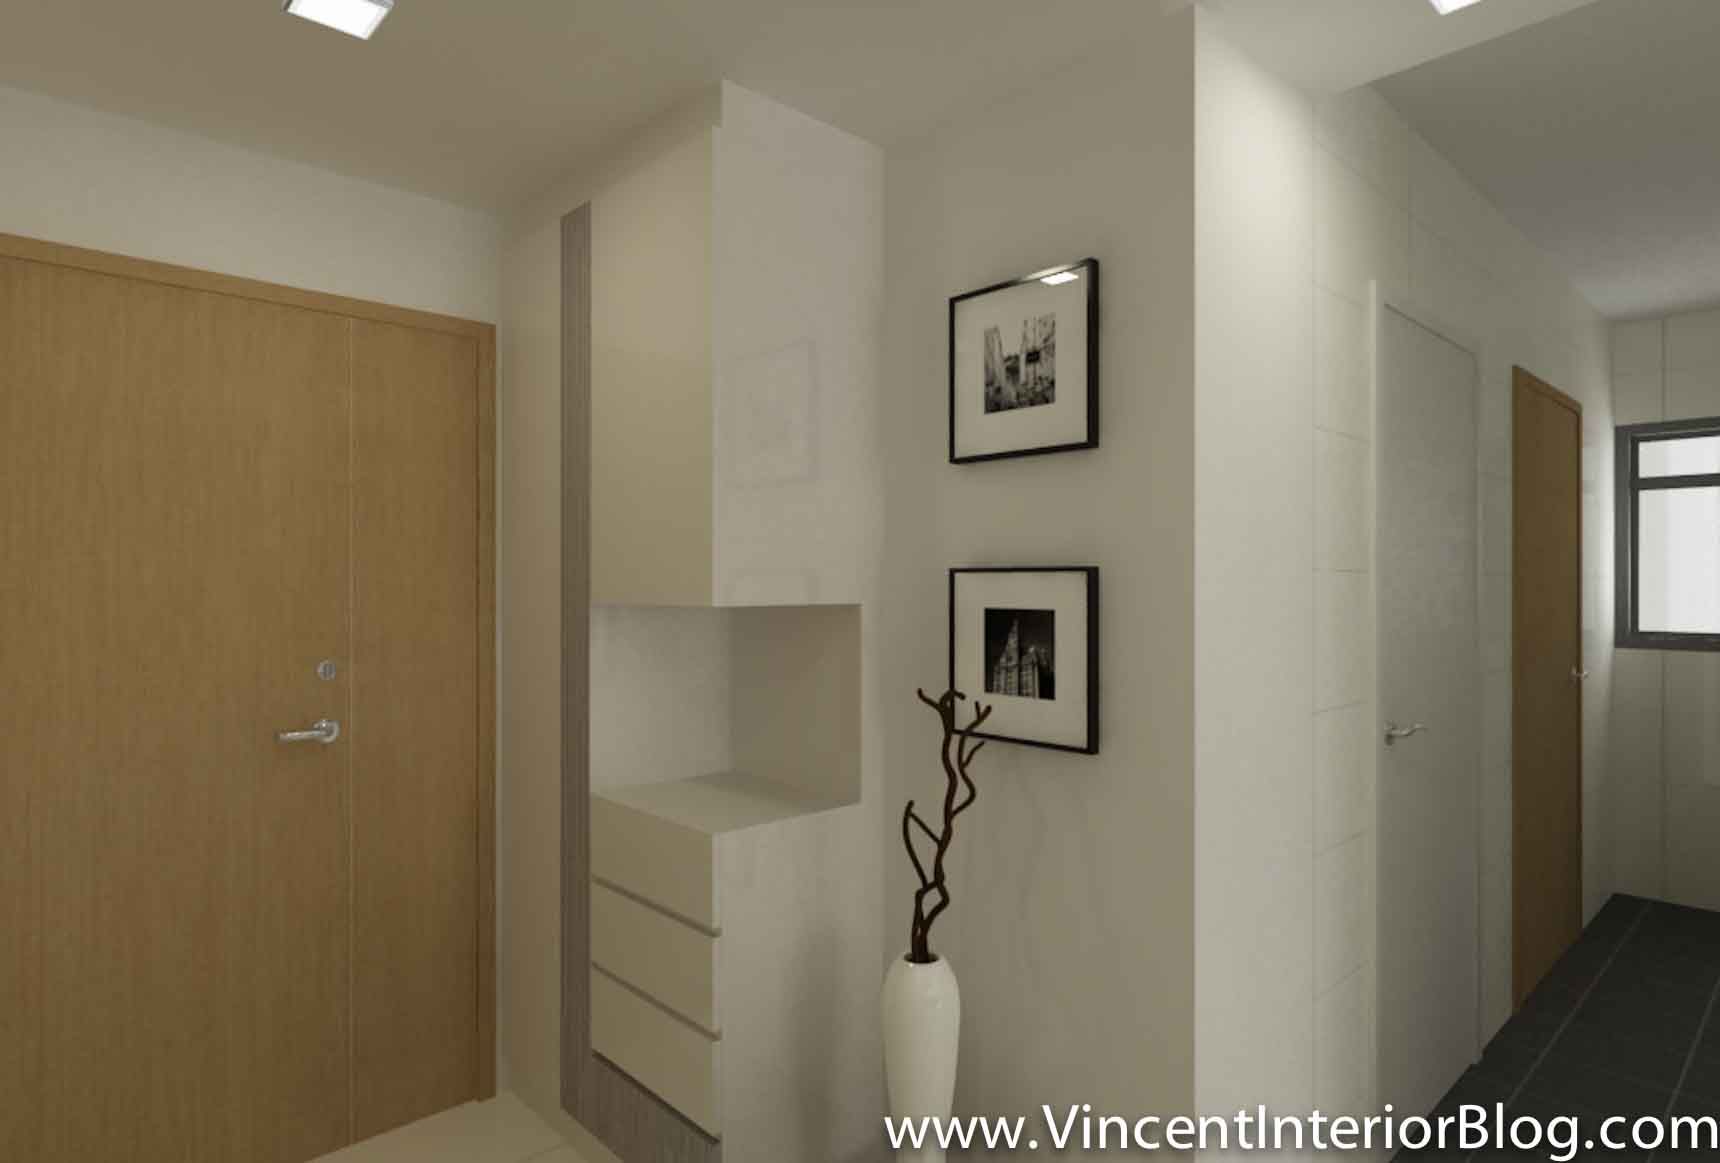 3 room hdb sengkang living room 2 vincent interior blog for Interior design for 5 room hdb flat